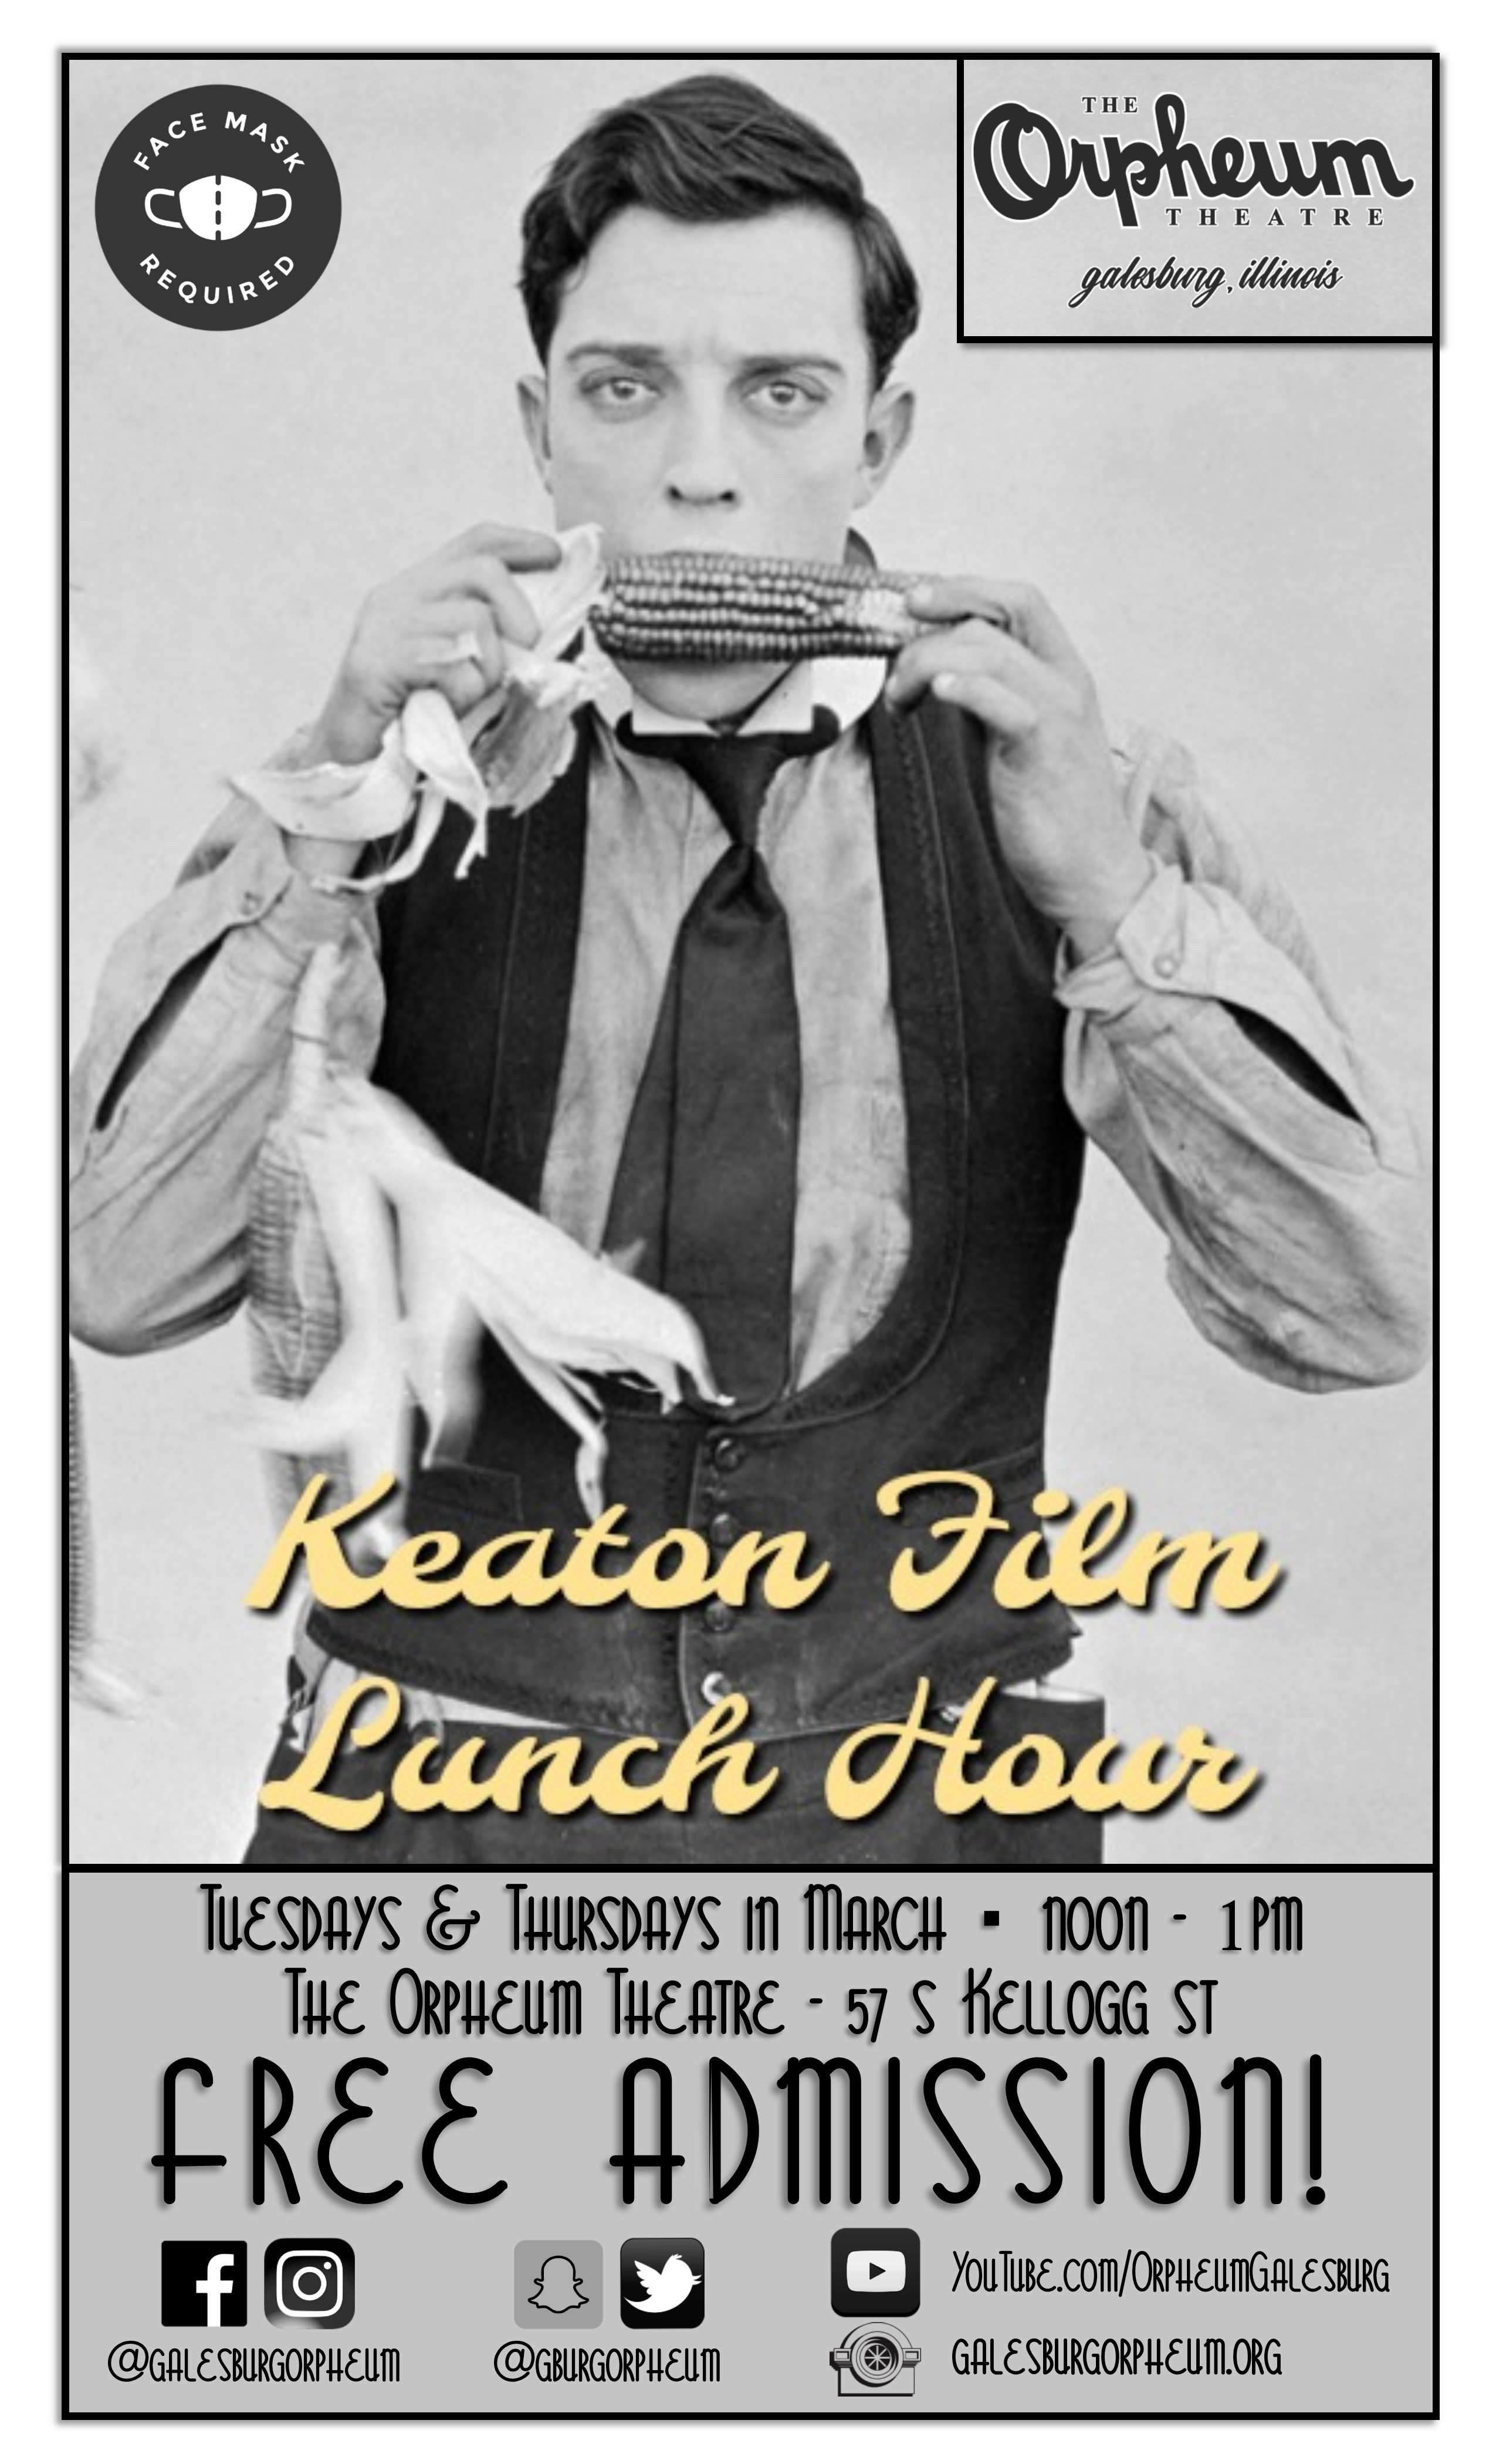 Keaton Film Lunch Hour - FREE ADMISSION